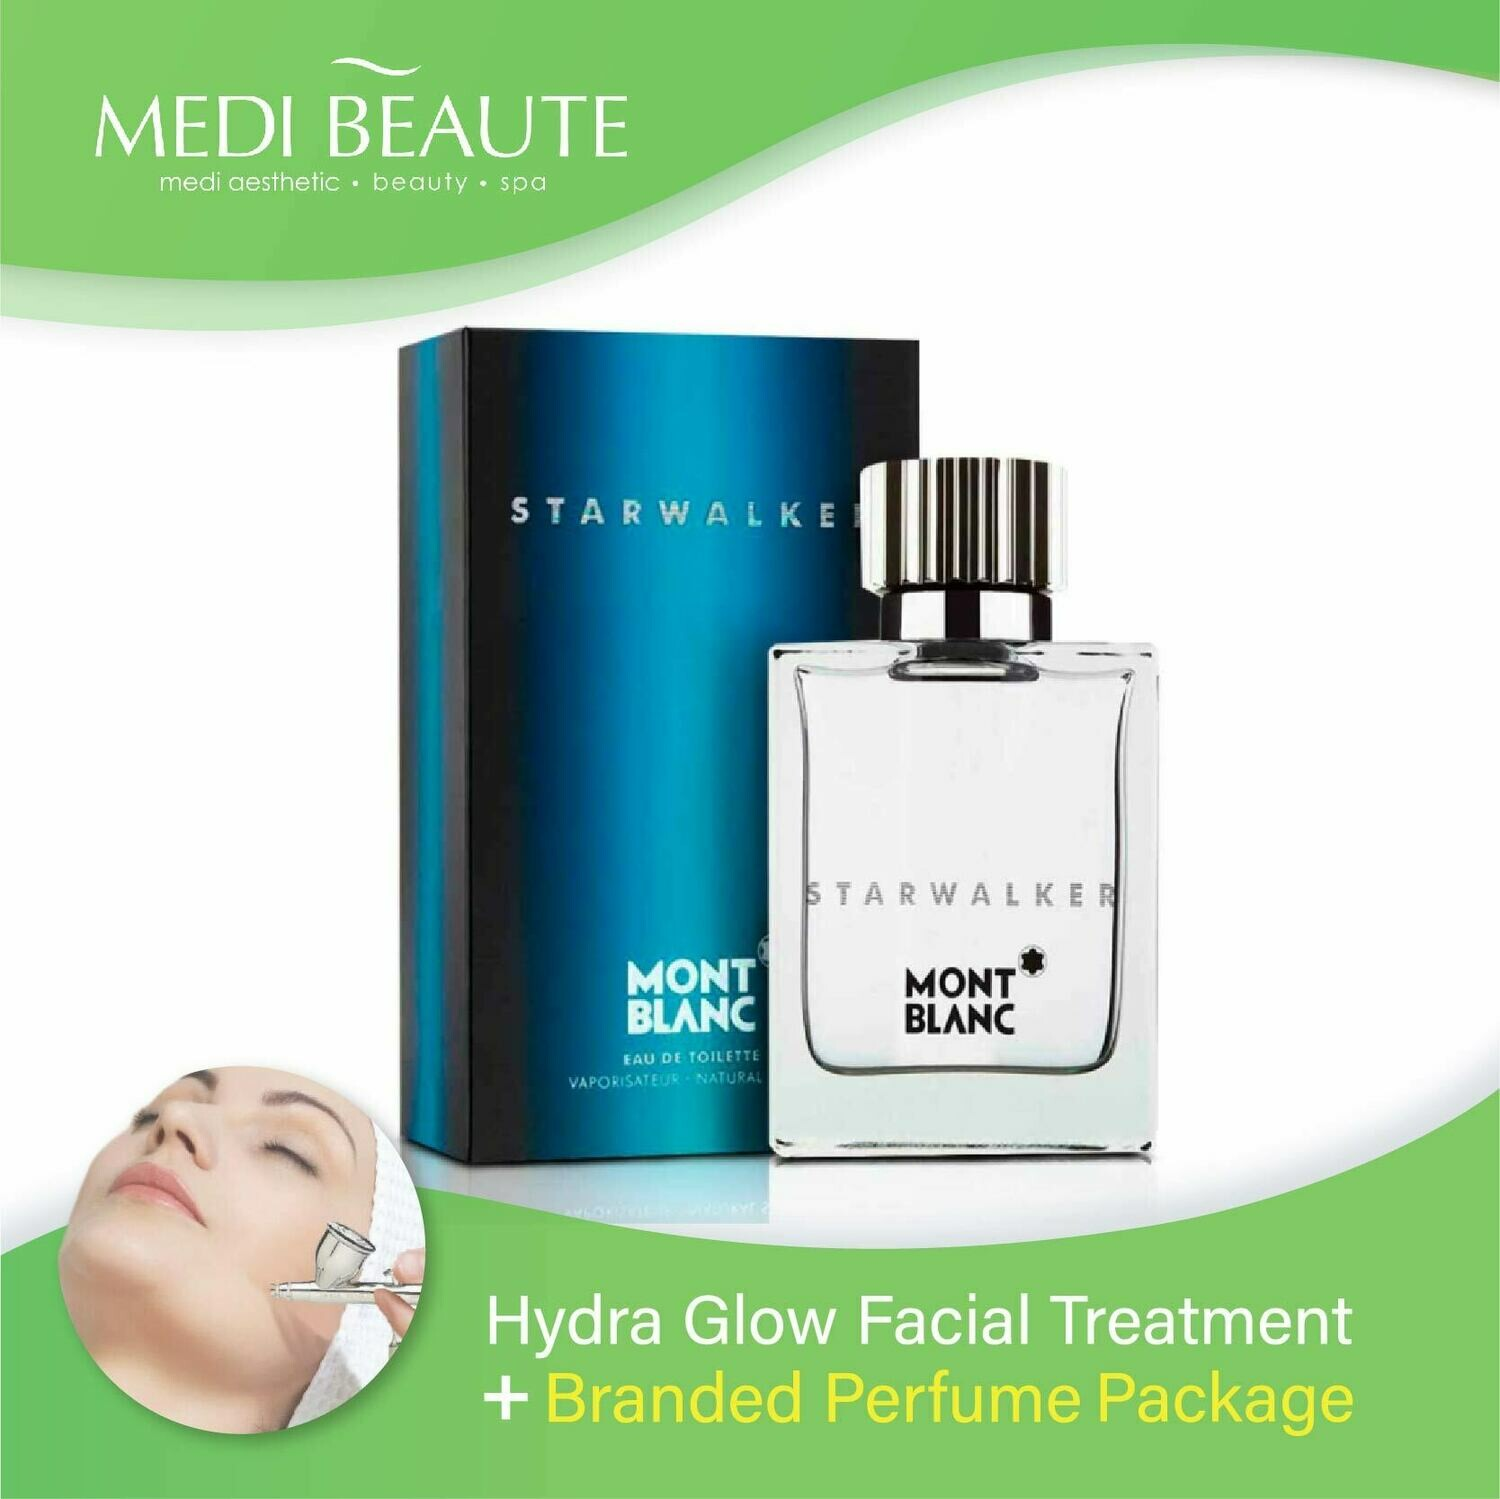 Medi Beaute Hydra Glow Facial + Branded Perfume ( Mont Blanc Starwalker EDT Men 75ml ) Package